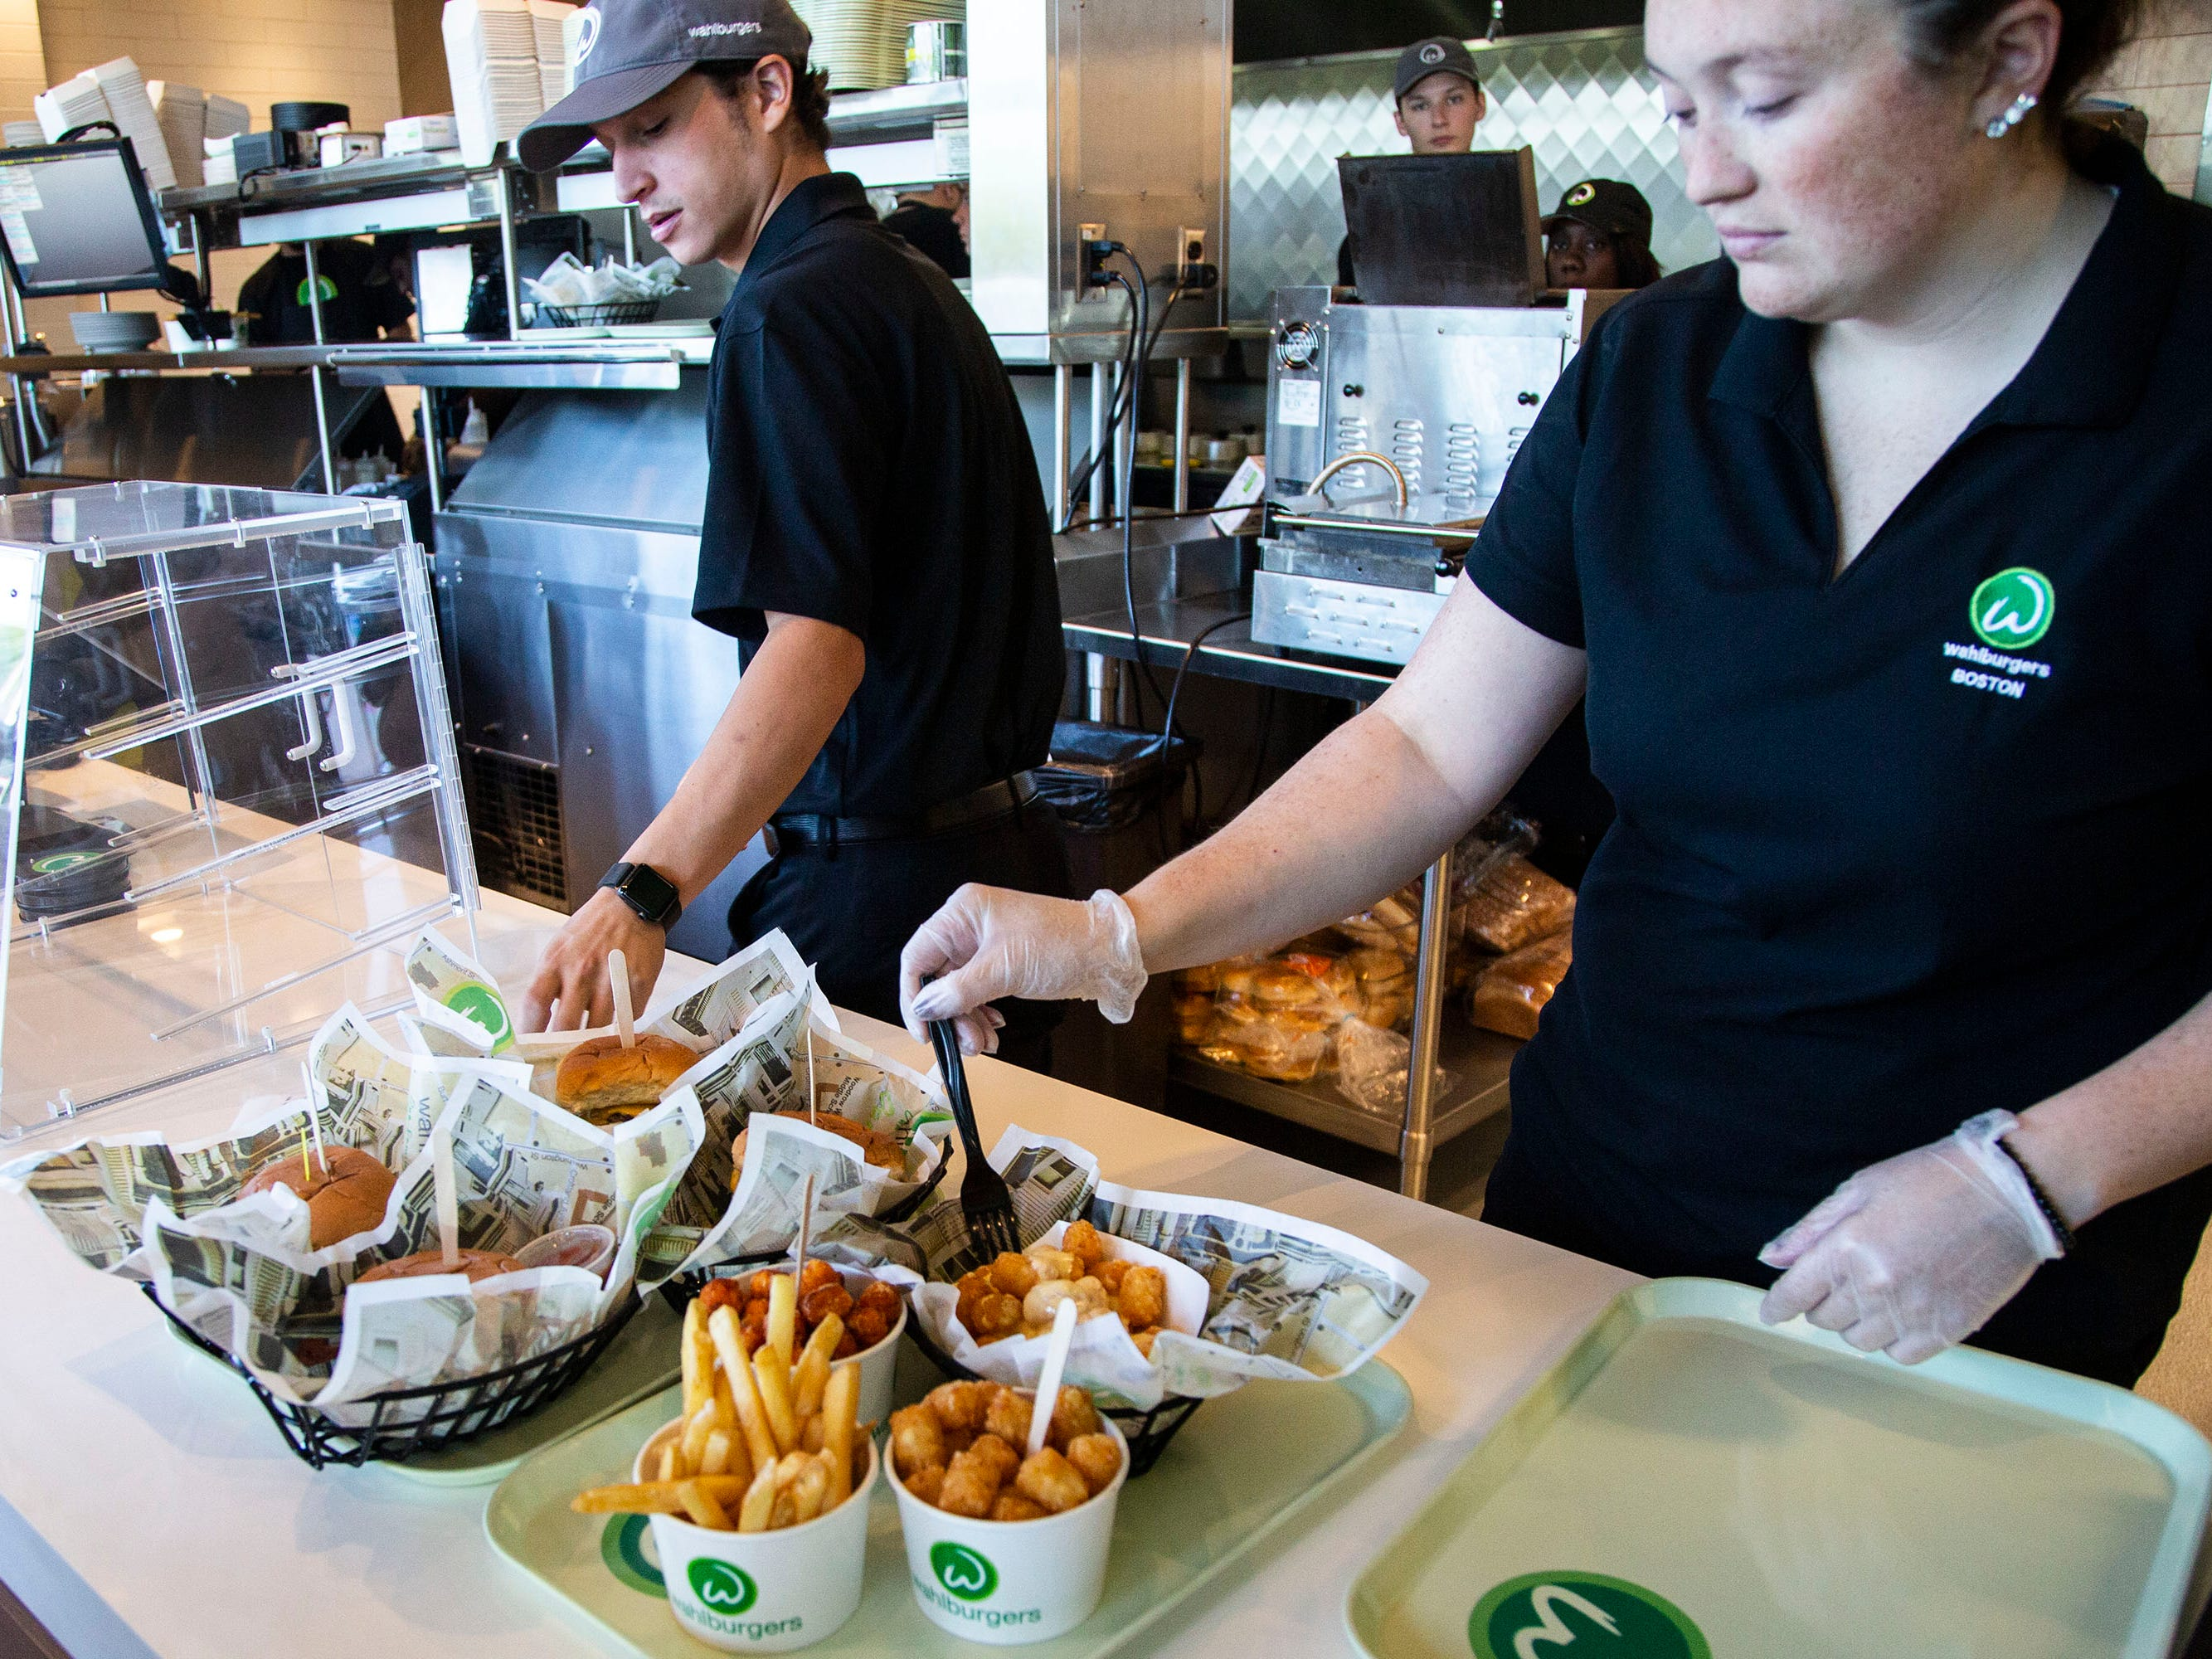 The Wahlburgers staff prepares for opening day of the restaurant this week during a preview event for Hy-Vee employees on Monday, Sept. 10, 2018, in the Jordan Creek Town Center in West Des Moines. Hy-Vee plans to bring 26 locations of the burger restaurant to the midwest.